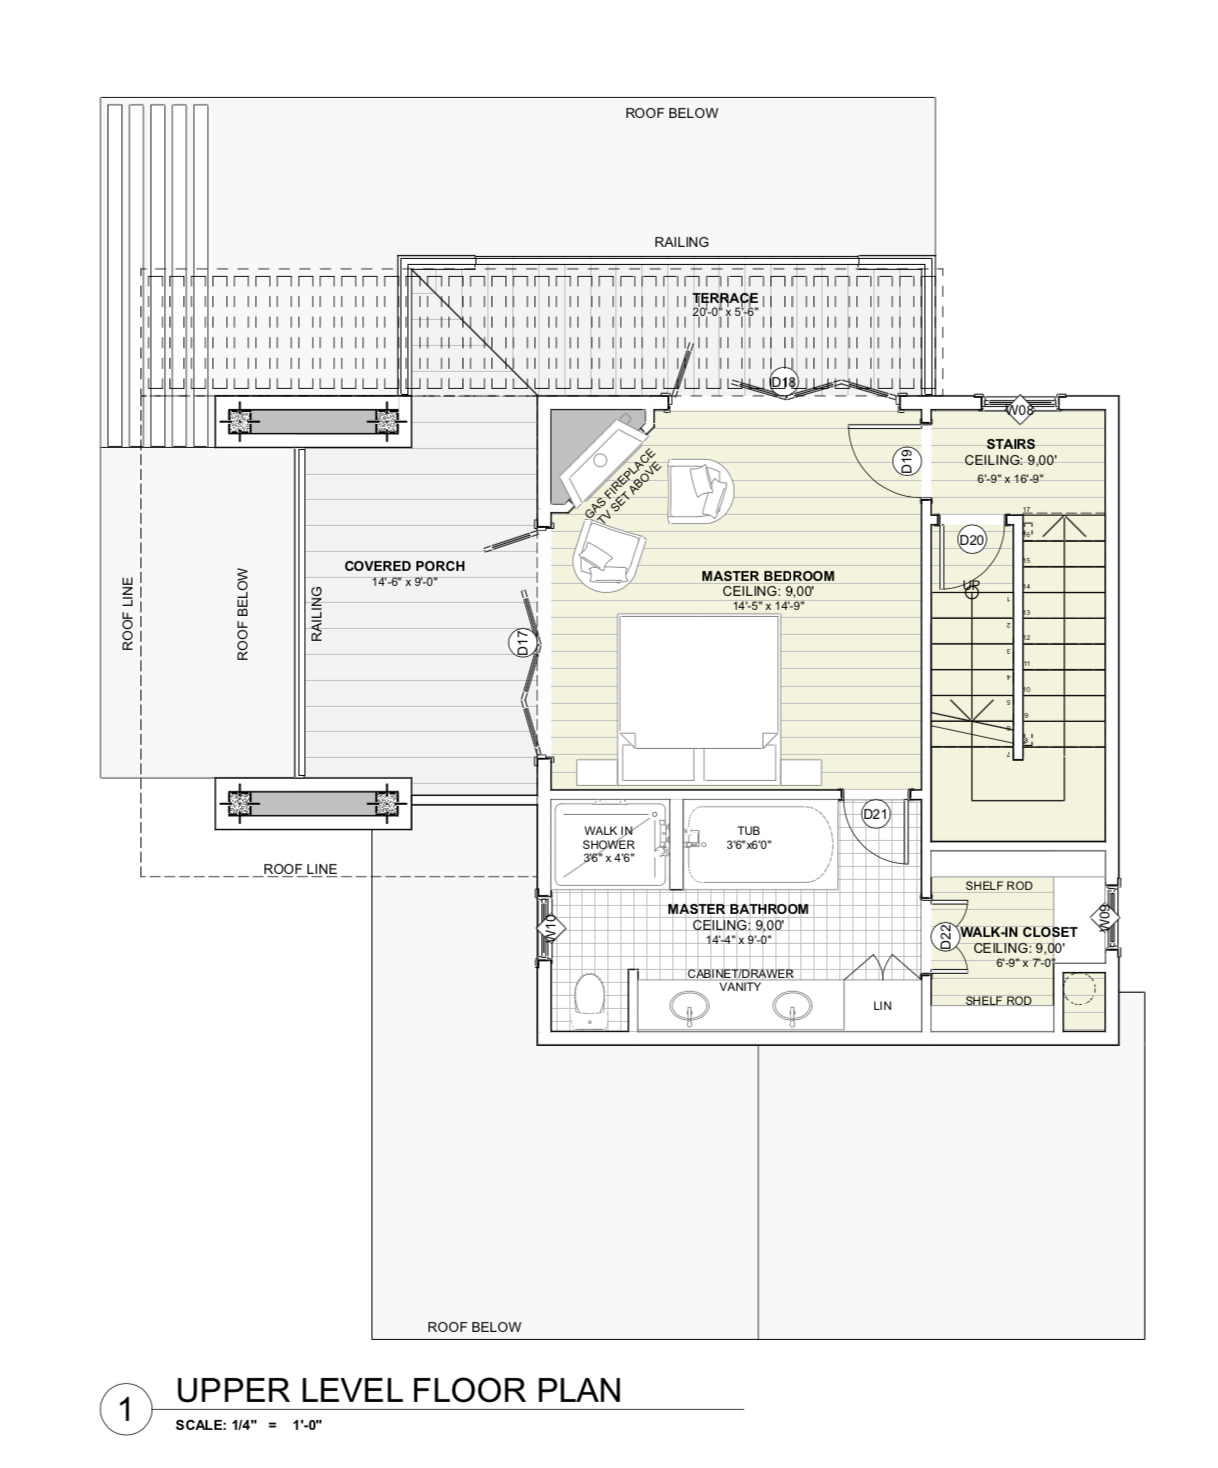 House Plan - Master Suite